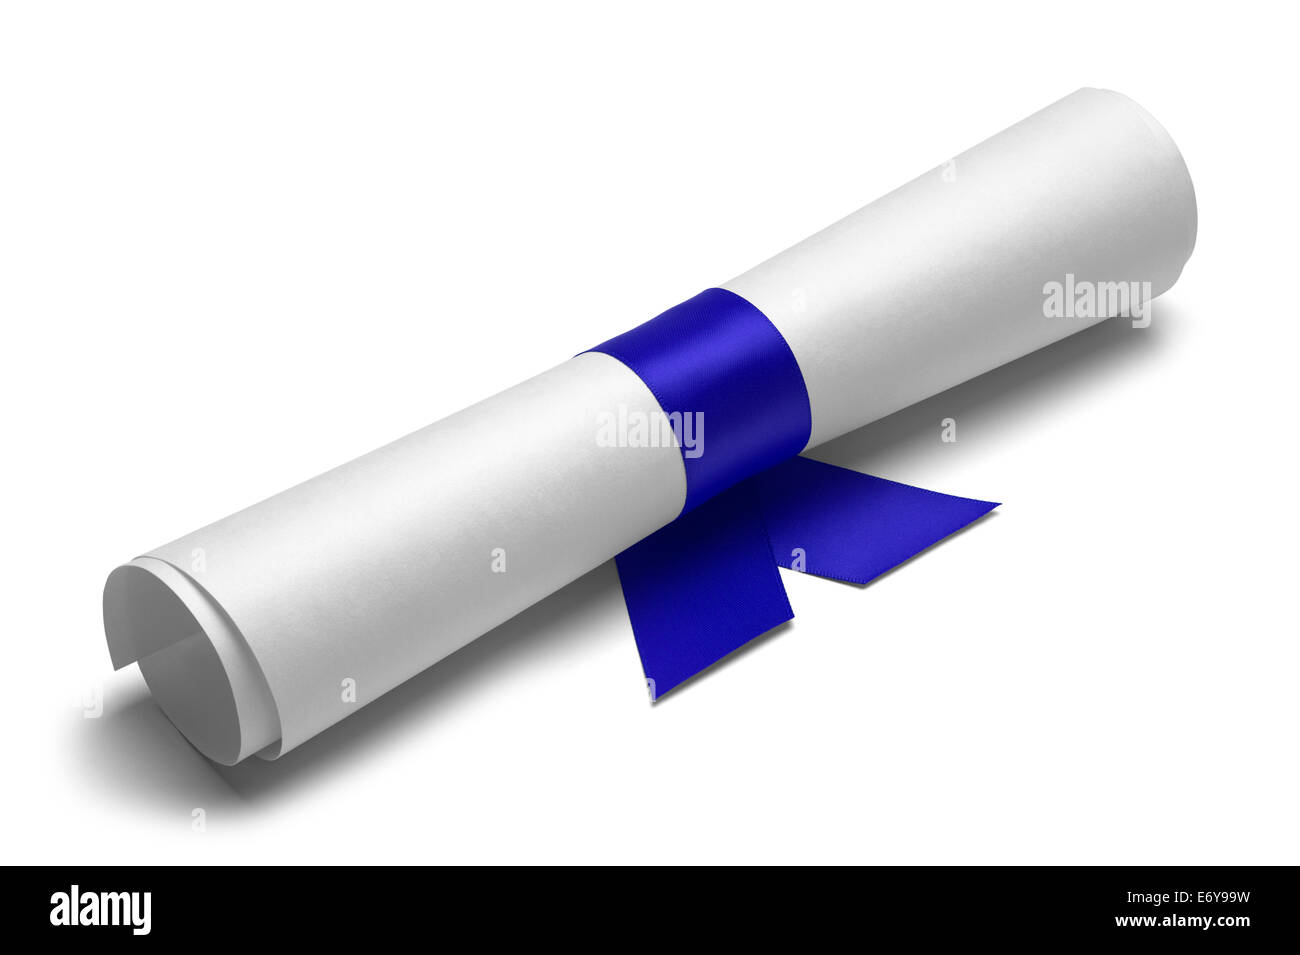 Diploma tied with blue ribbon on a white isolated background. - Stock Image